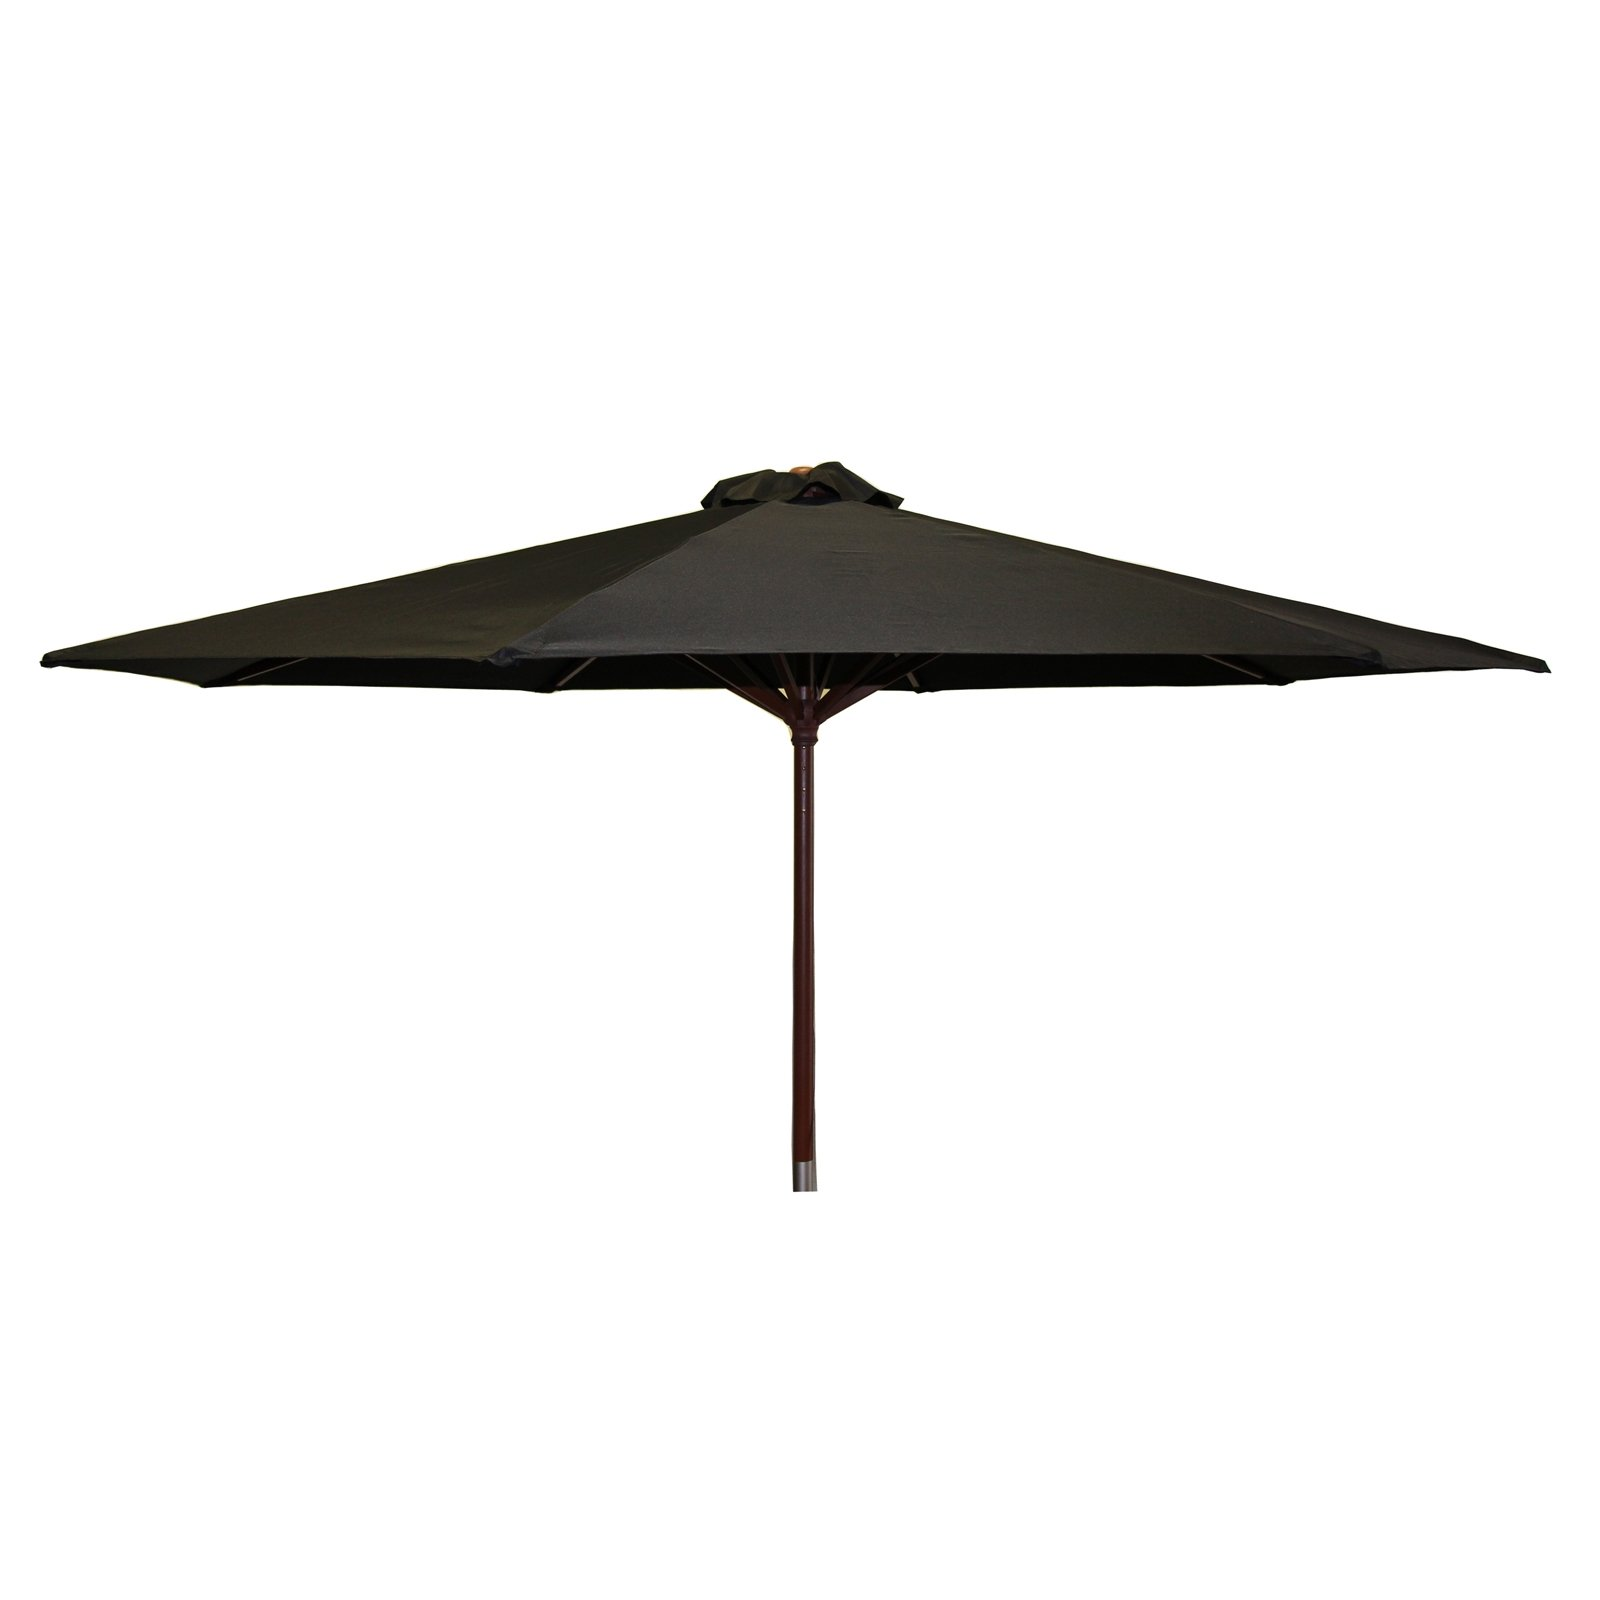 9ft Classic Outdoor Market Umbrella Home Patio Canopy Sun Shelter - Black